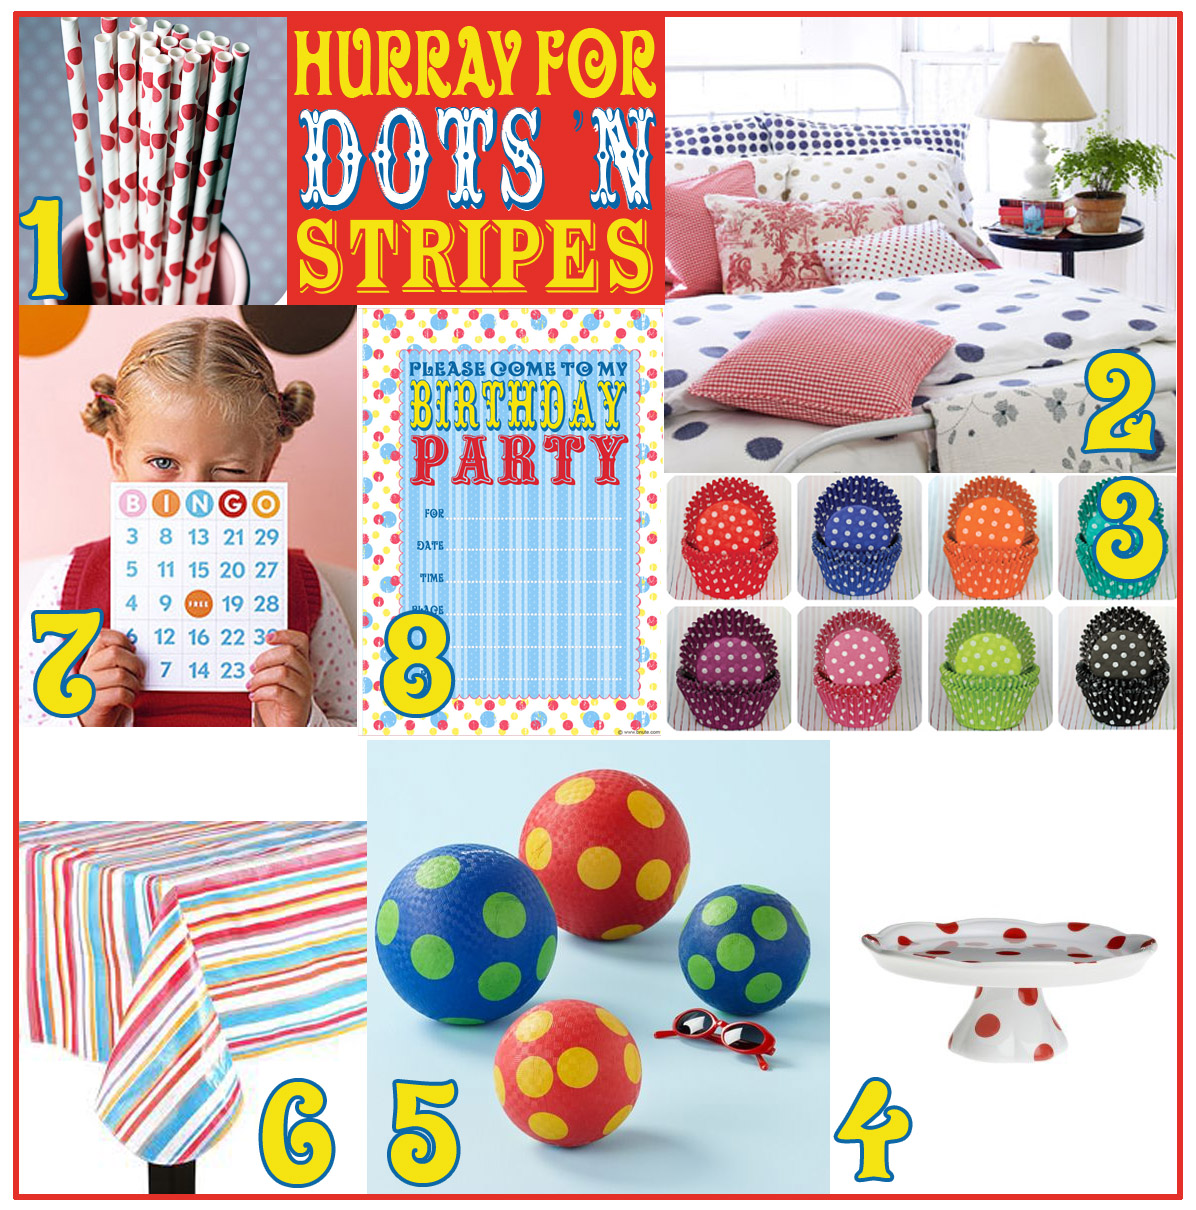 Bnute productions weekly roundup hurray for dots 39 n for Dots and stripes party theme